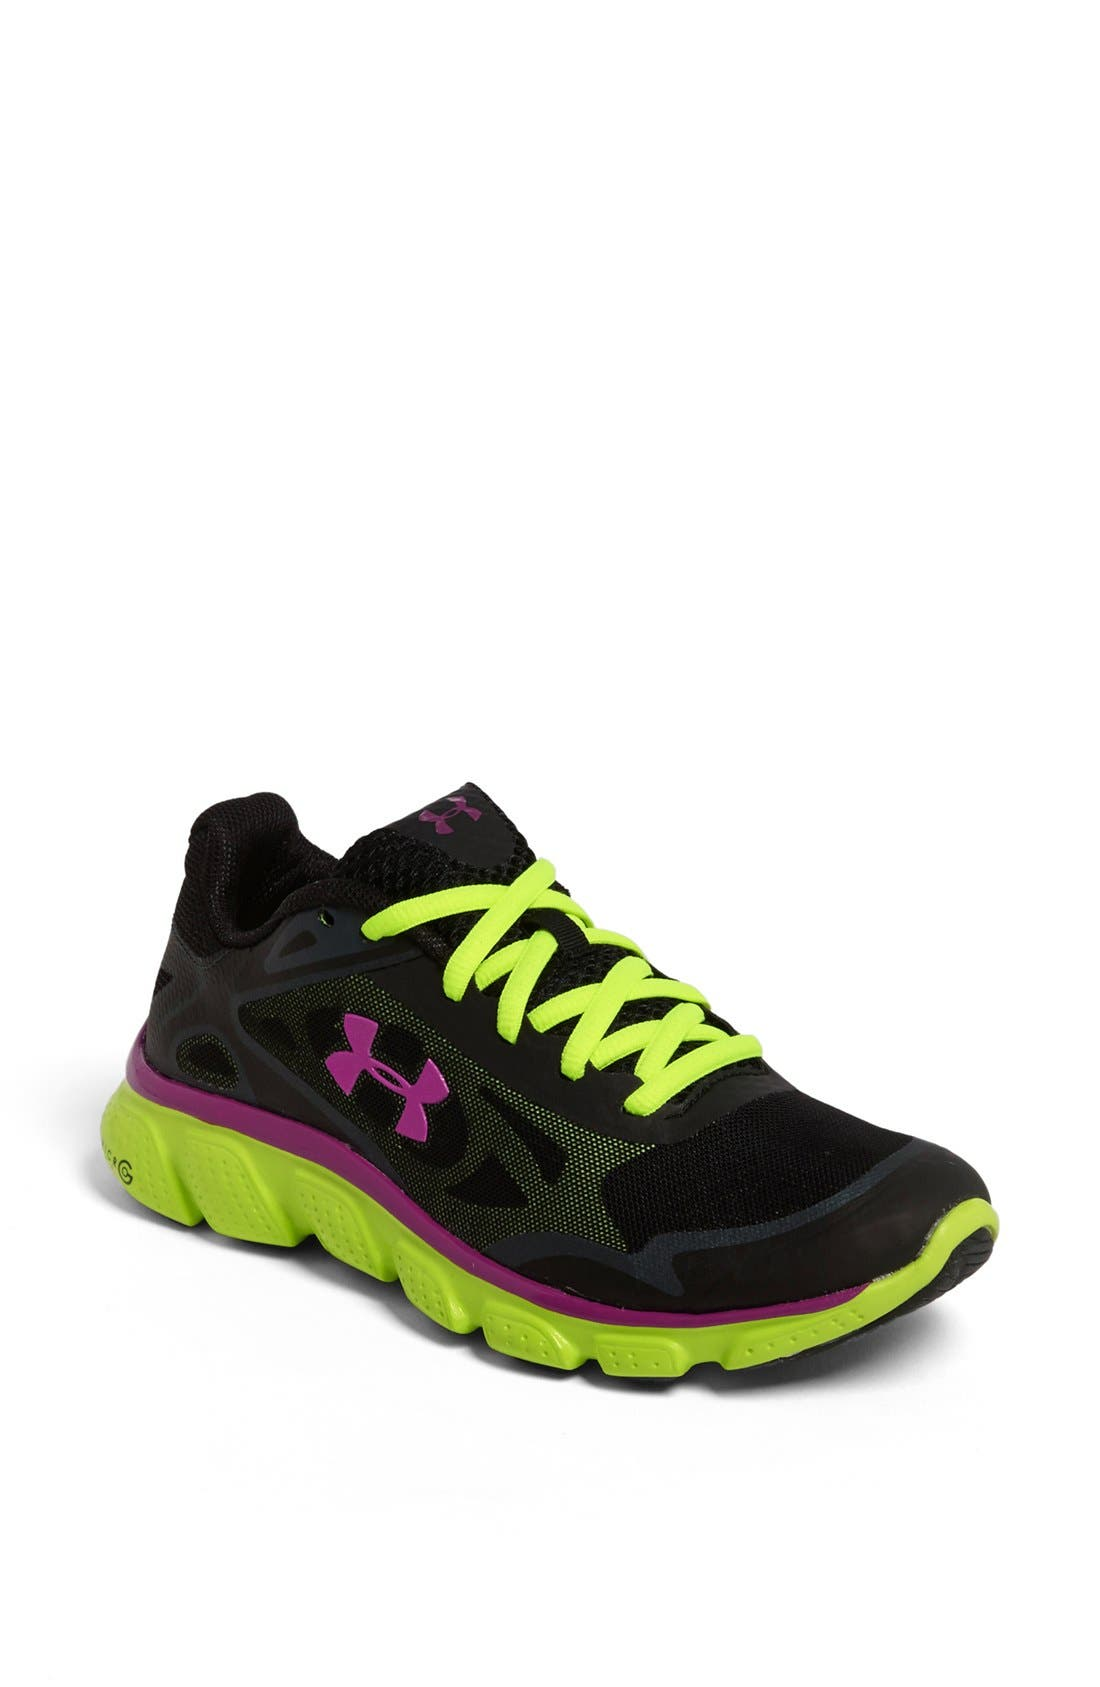 Alternate Image 1 Selected - Under Armour 'Micro G® Pulse' Running Shoe (Women)